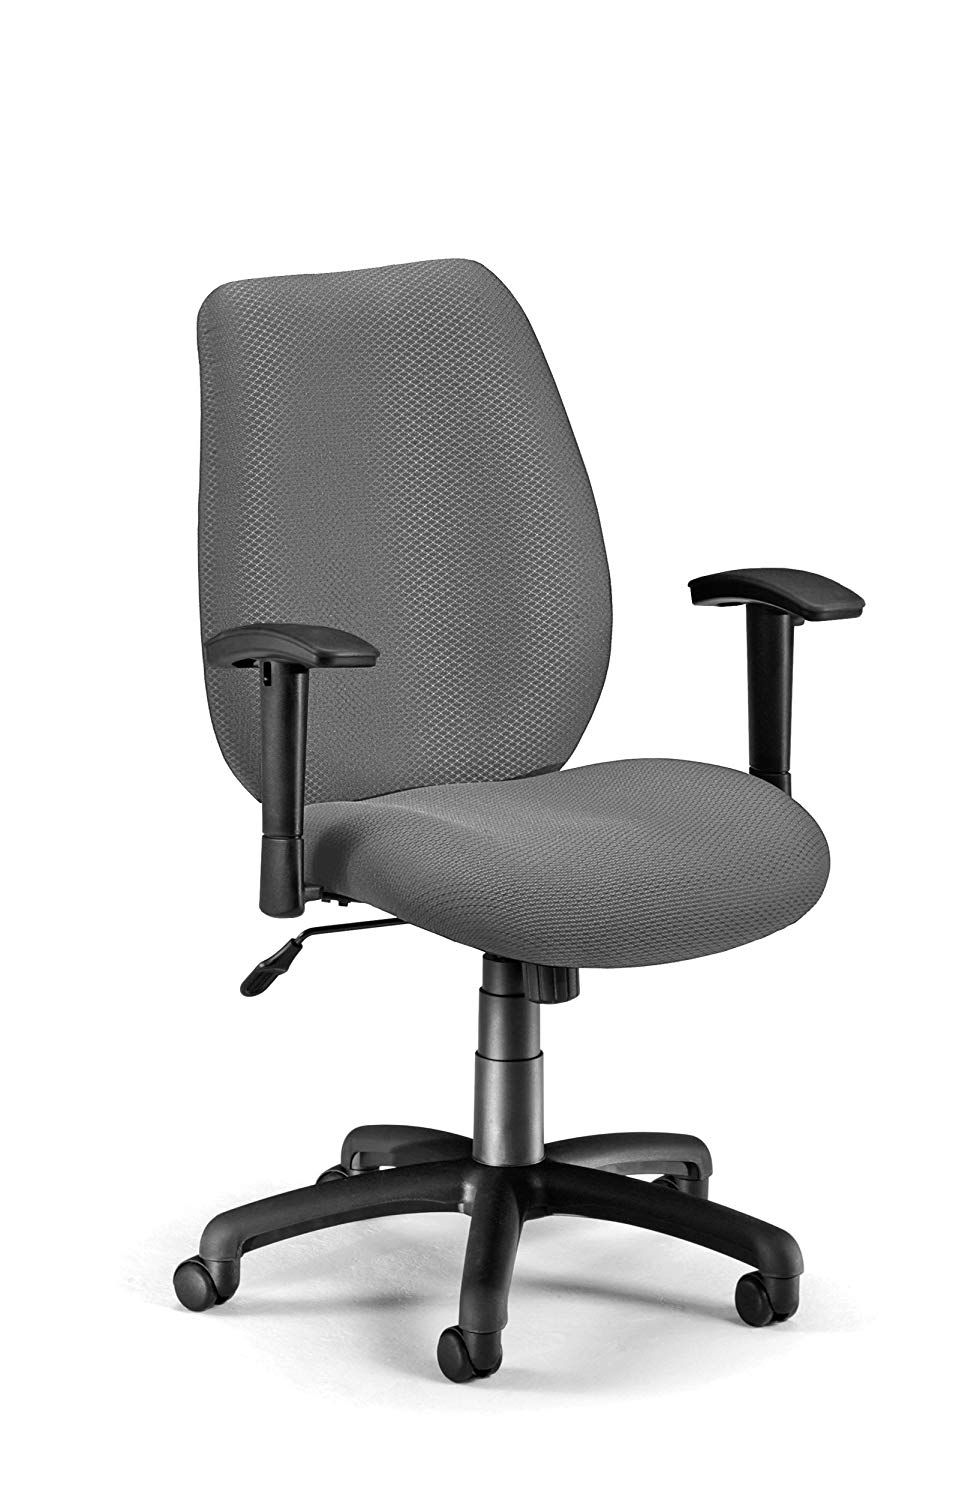 OFM Ergonomic Managers Chair, Graphite Chair, Home